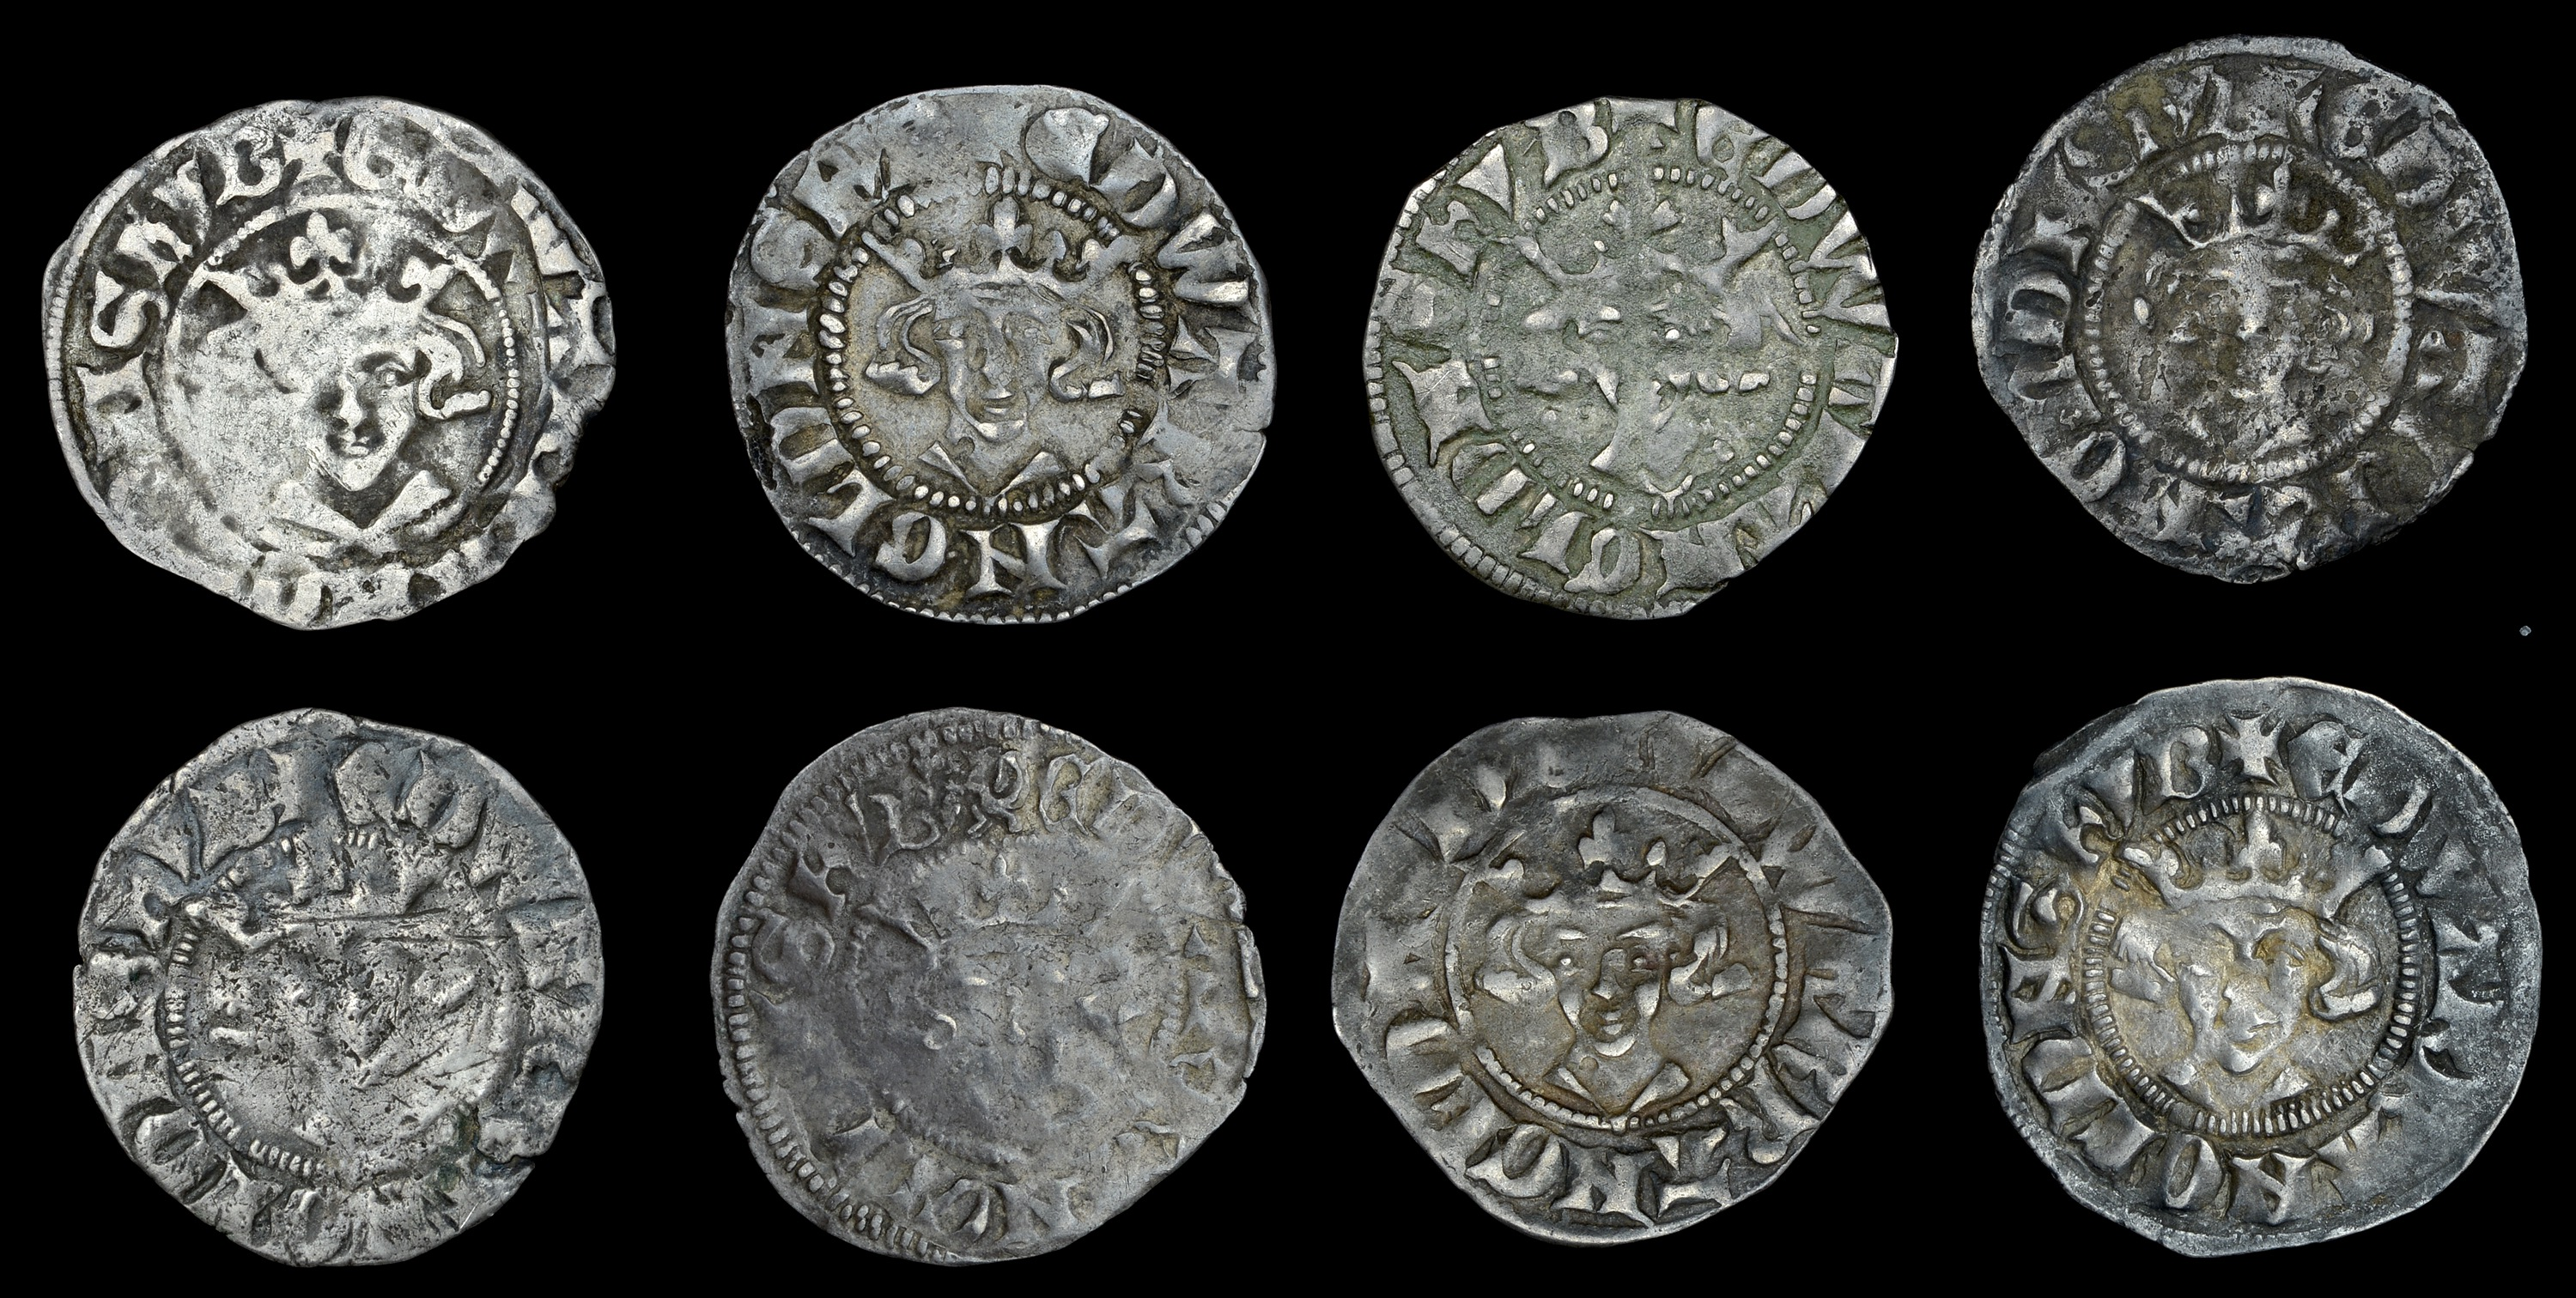 Lot 52 - English Coins from the Collection of the Late Dr John Hulett (Part IX)